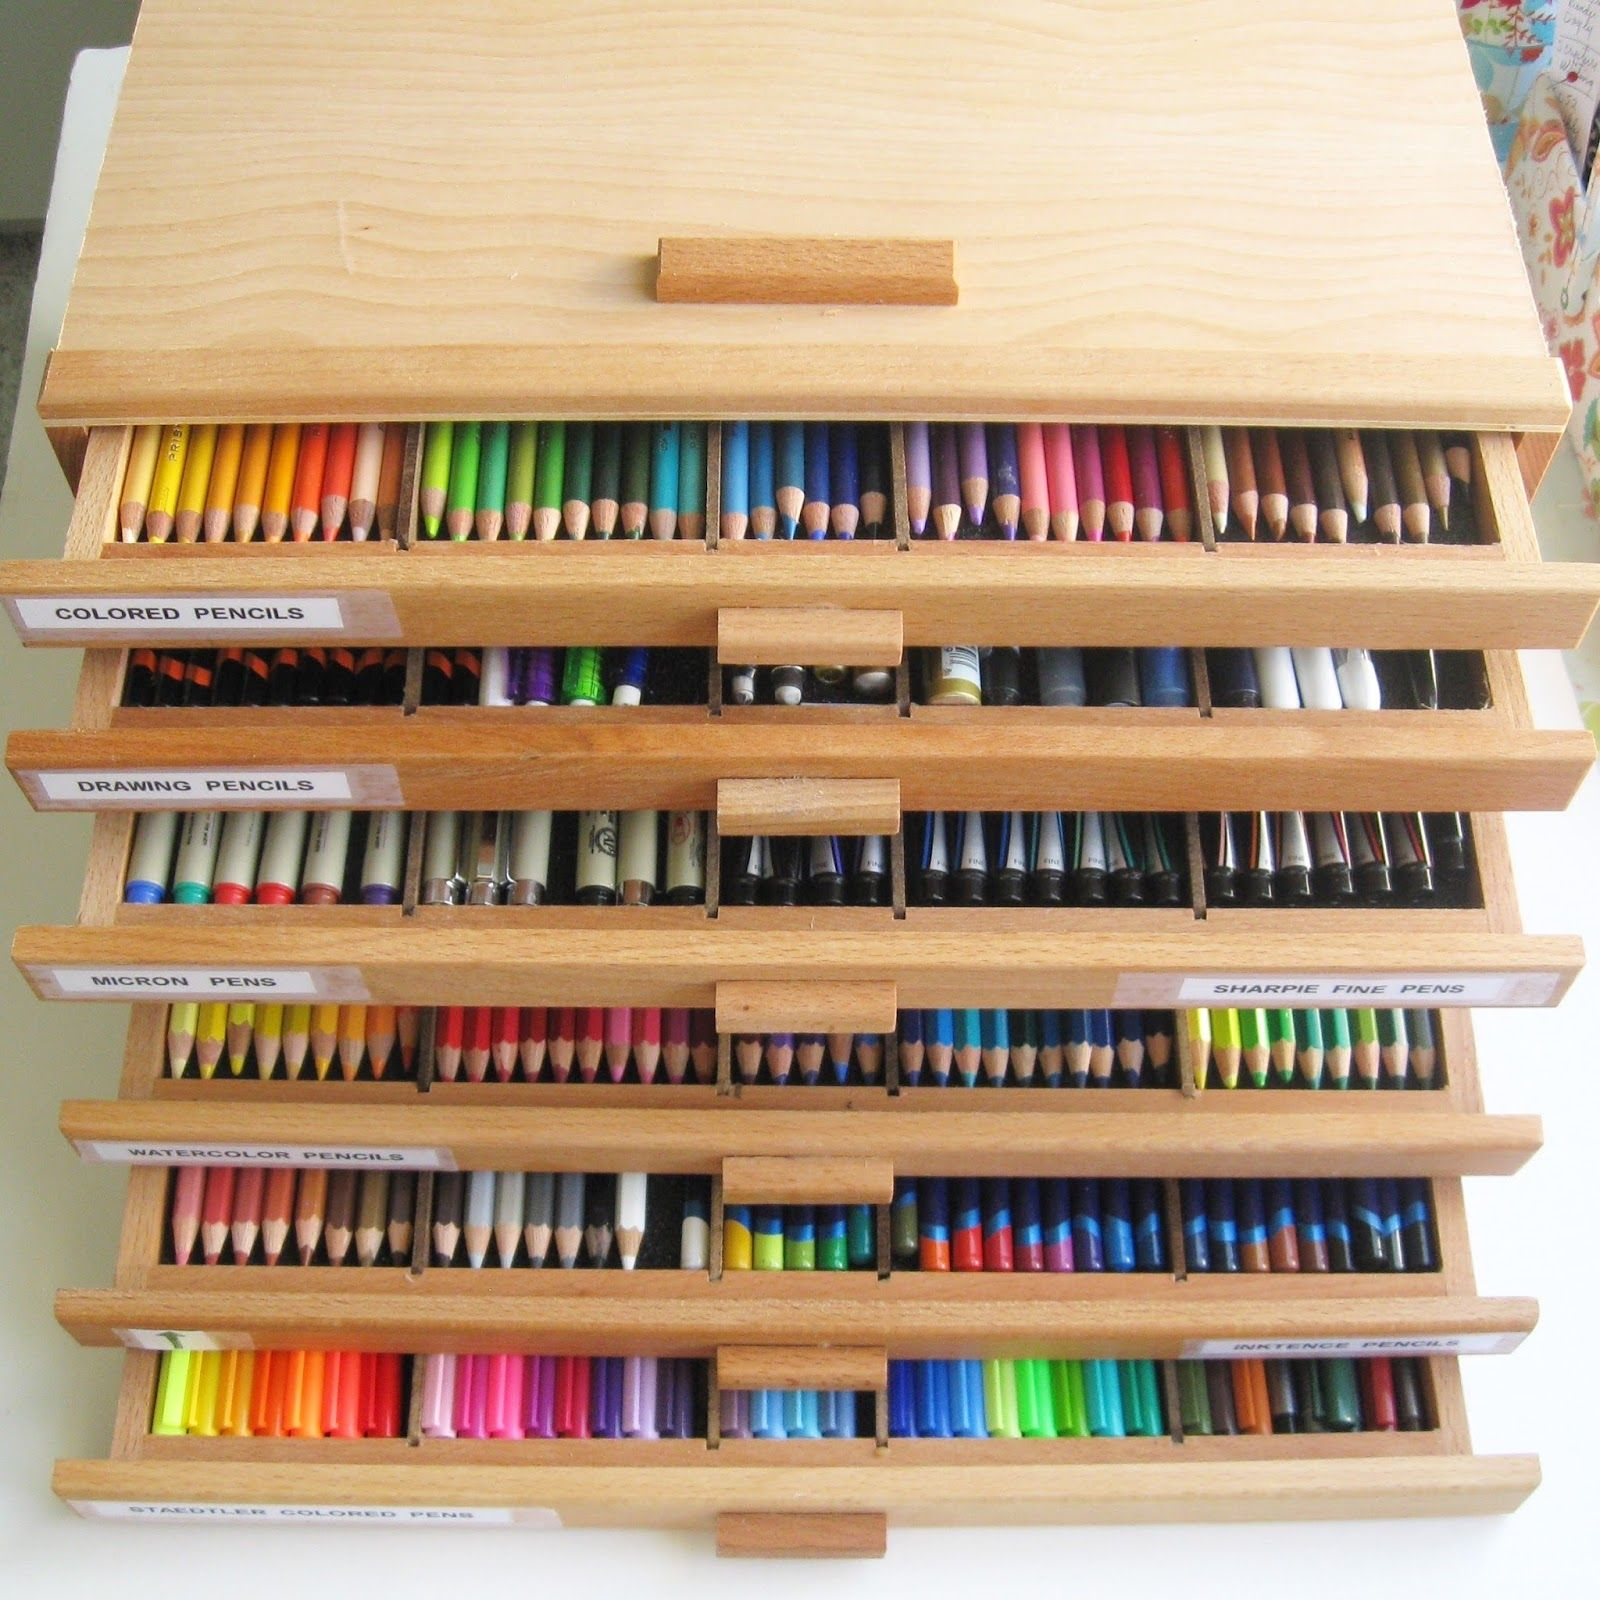 Does Your Love For Coloring Leave You With Books, Pages And Pens  Everywhere?anise Your Art Supplies With Thecoloringbookub Guide To  Coloring Storage!